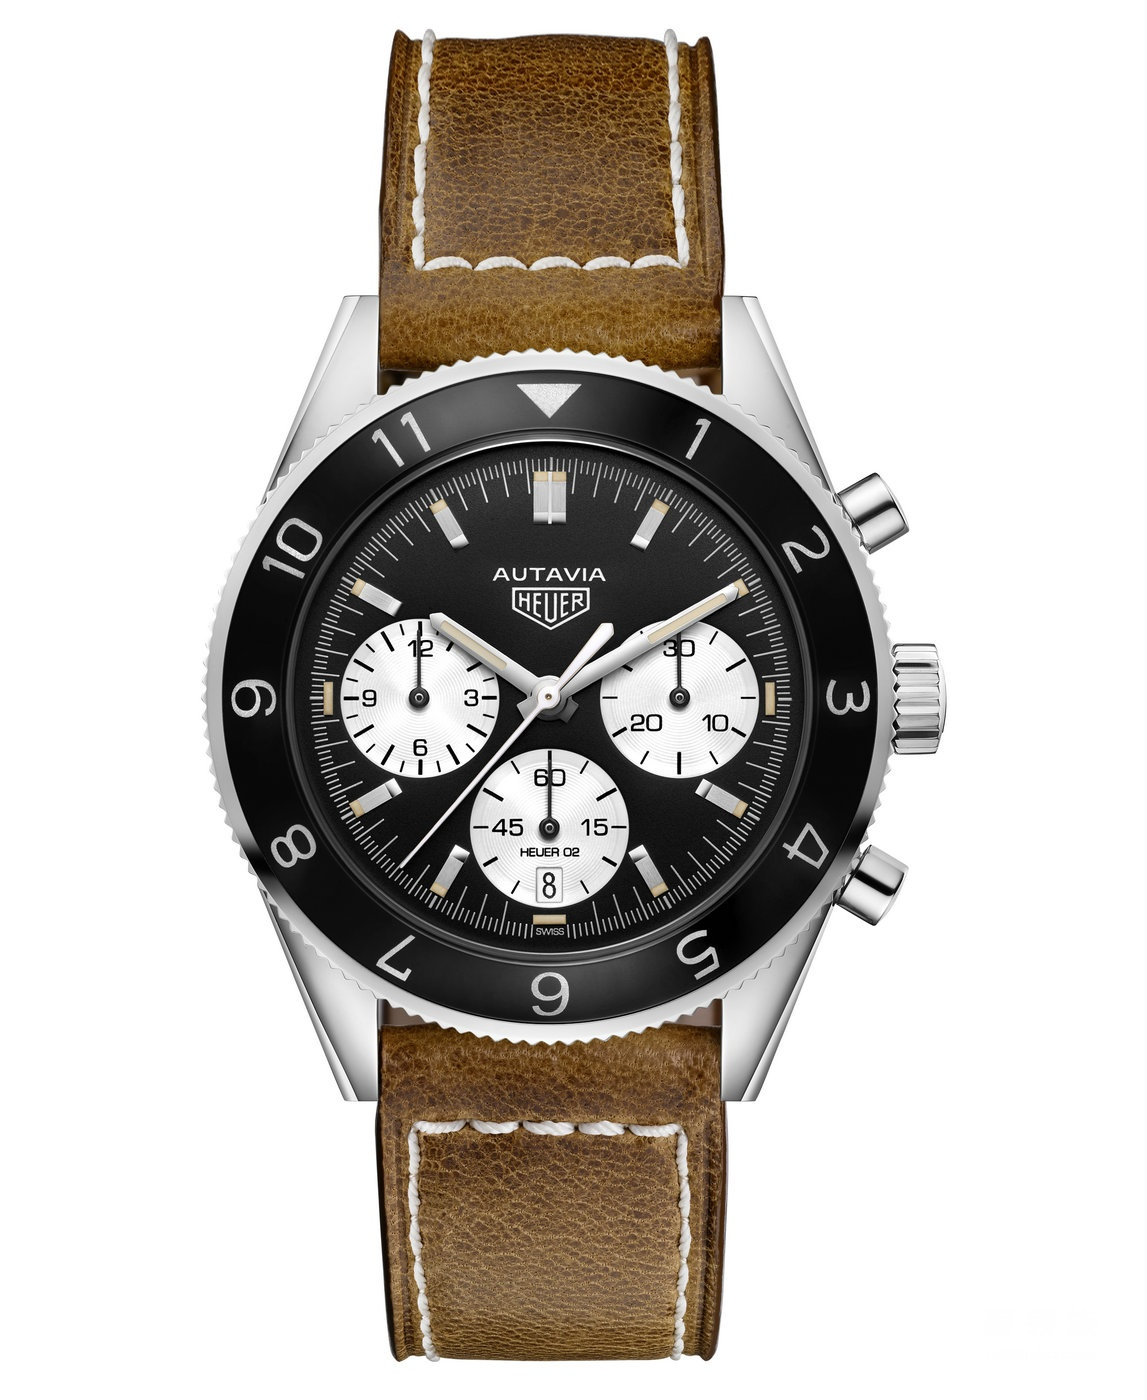 2017 New UK TAG Heuer Replica Watches For Father's Day